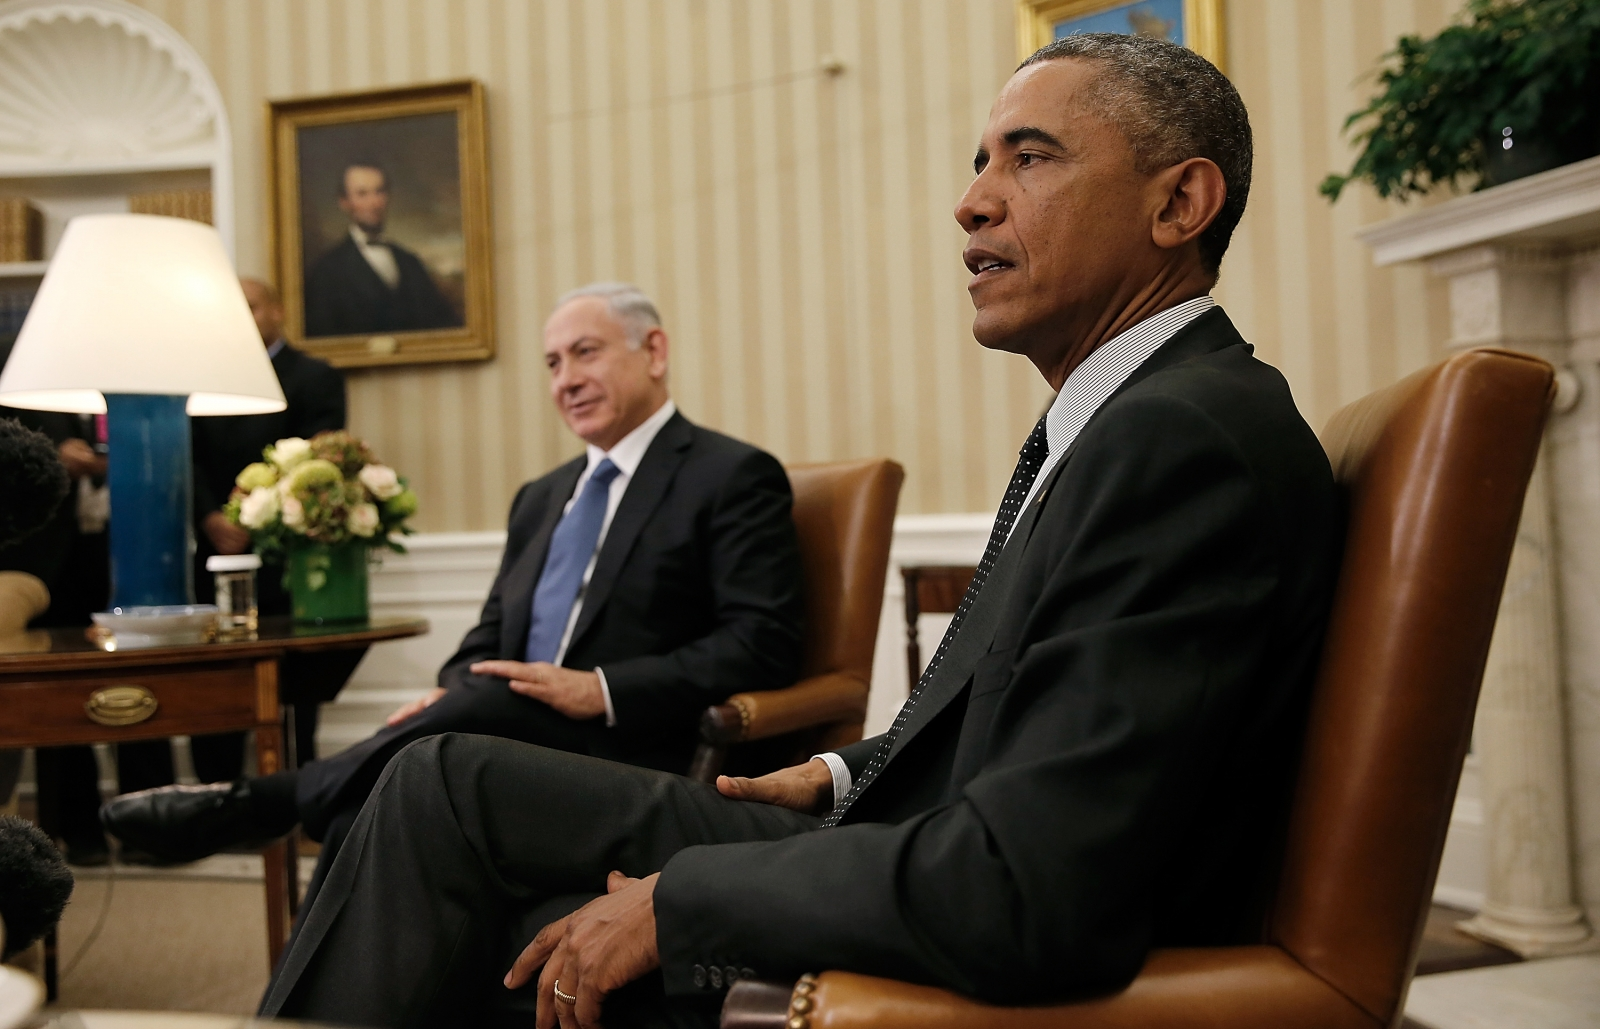 US president Barack Obama and Israeli PM Benjamin Netanyahu